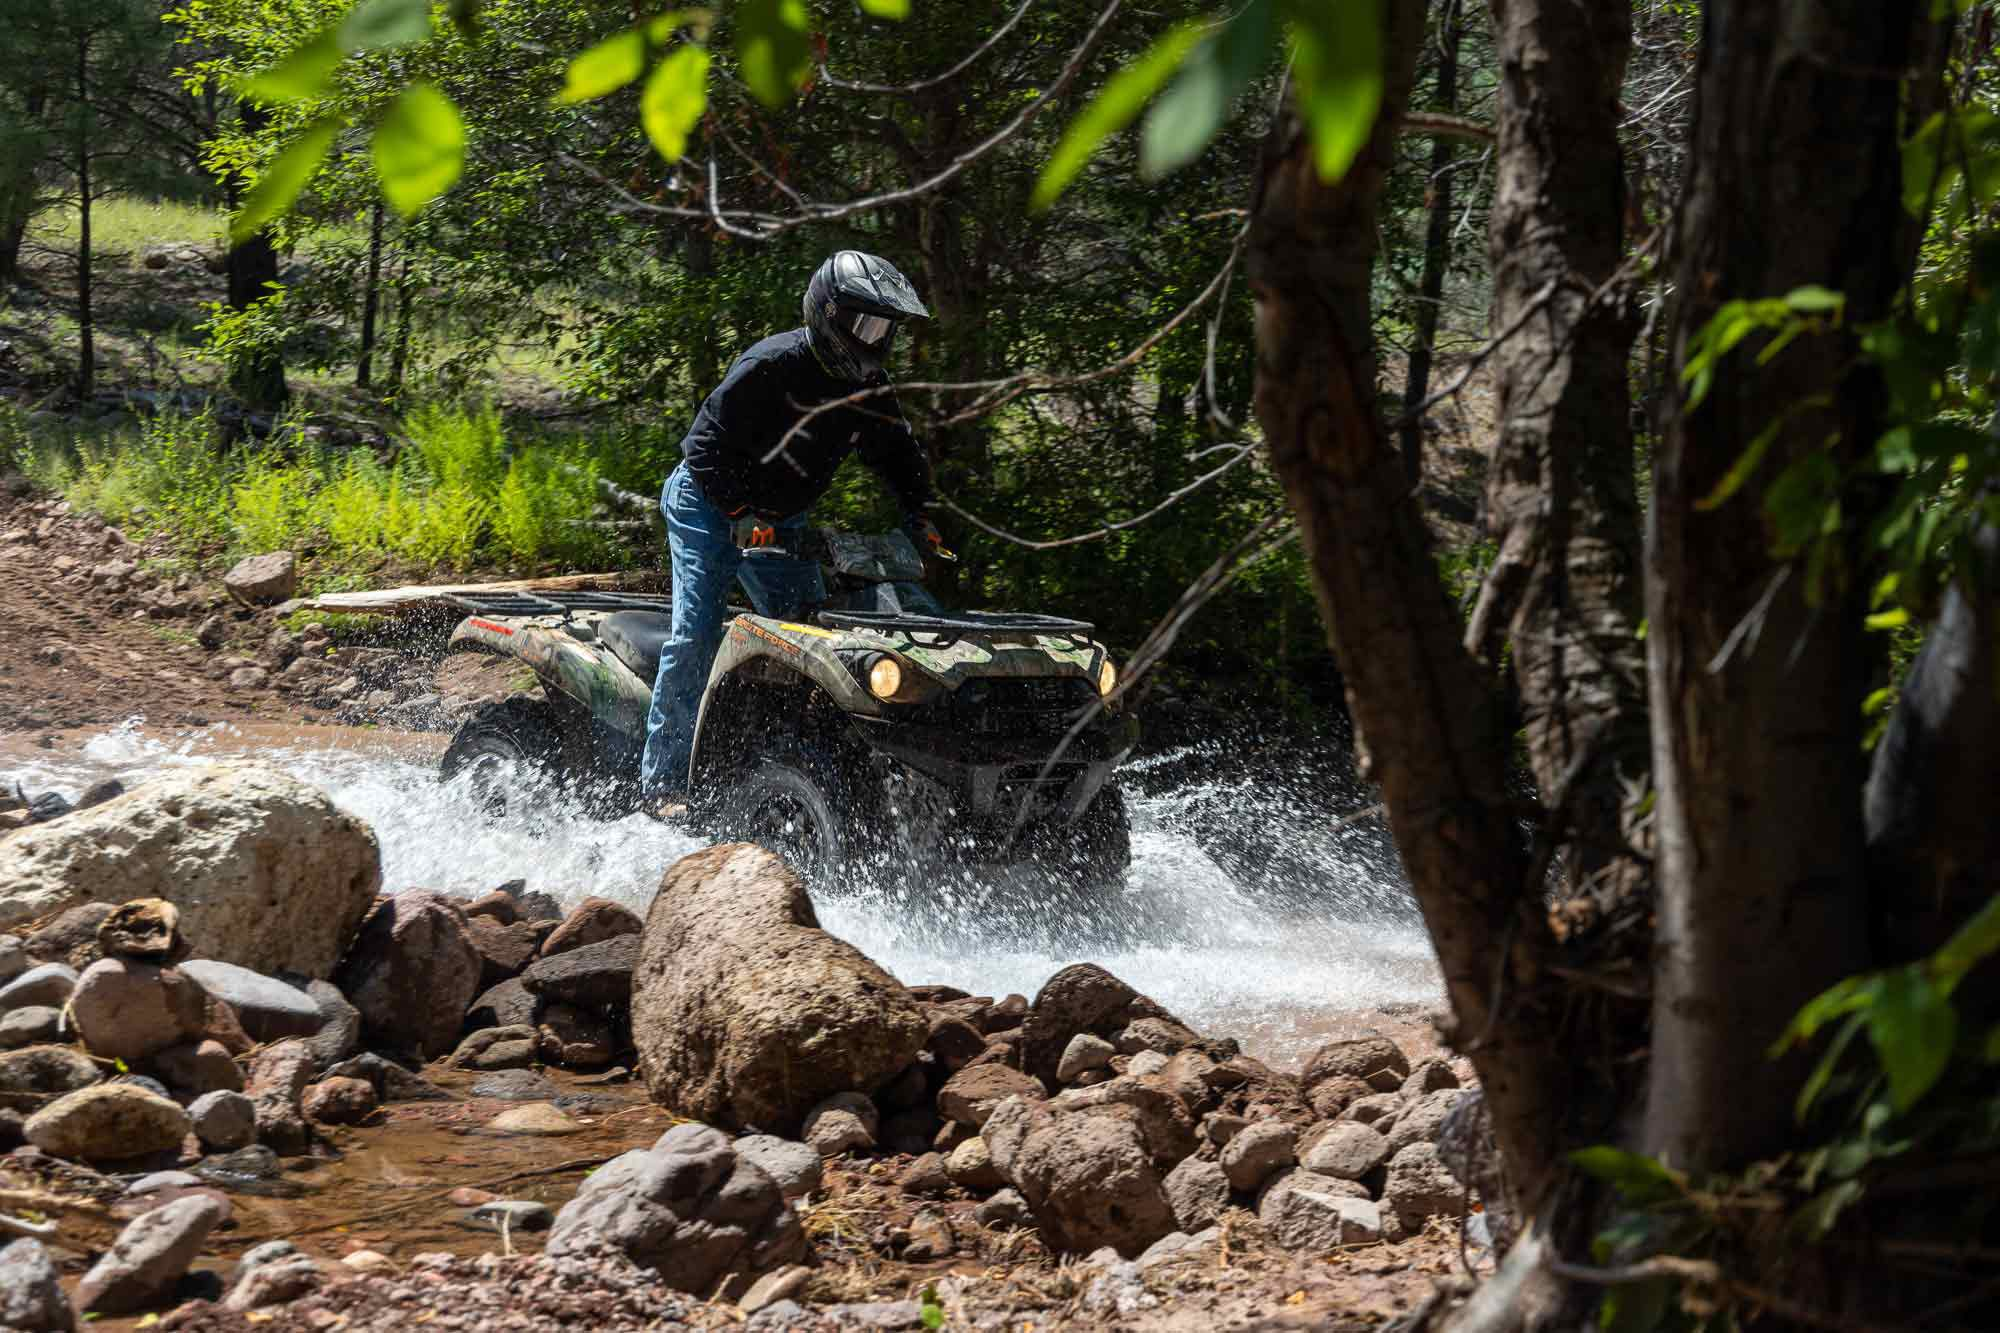 <i>ATV Rider</i> Executive Editor Jeff Henson handles a stream crossing on the 2021 Kawasaki Brute Force 750 he brought for our week in the wilderness.